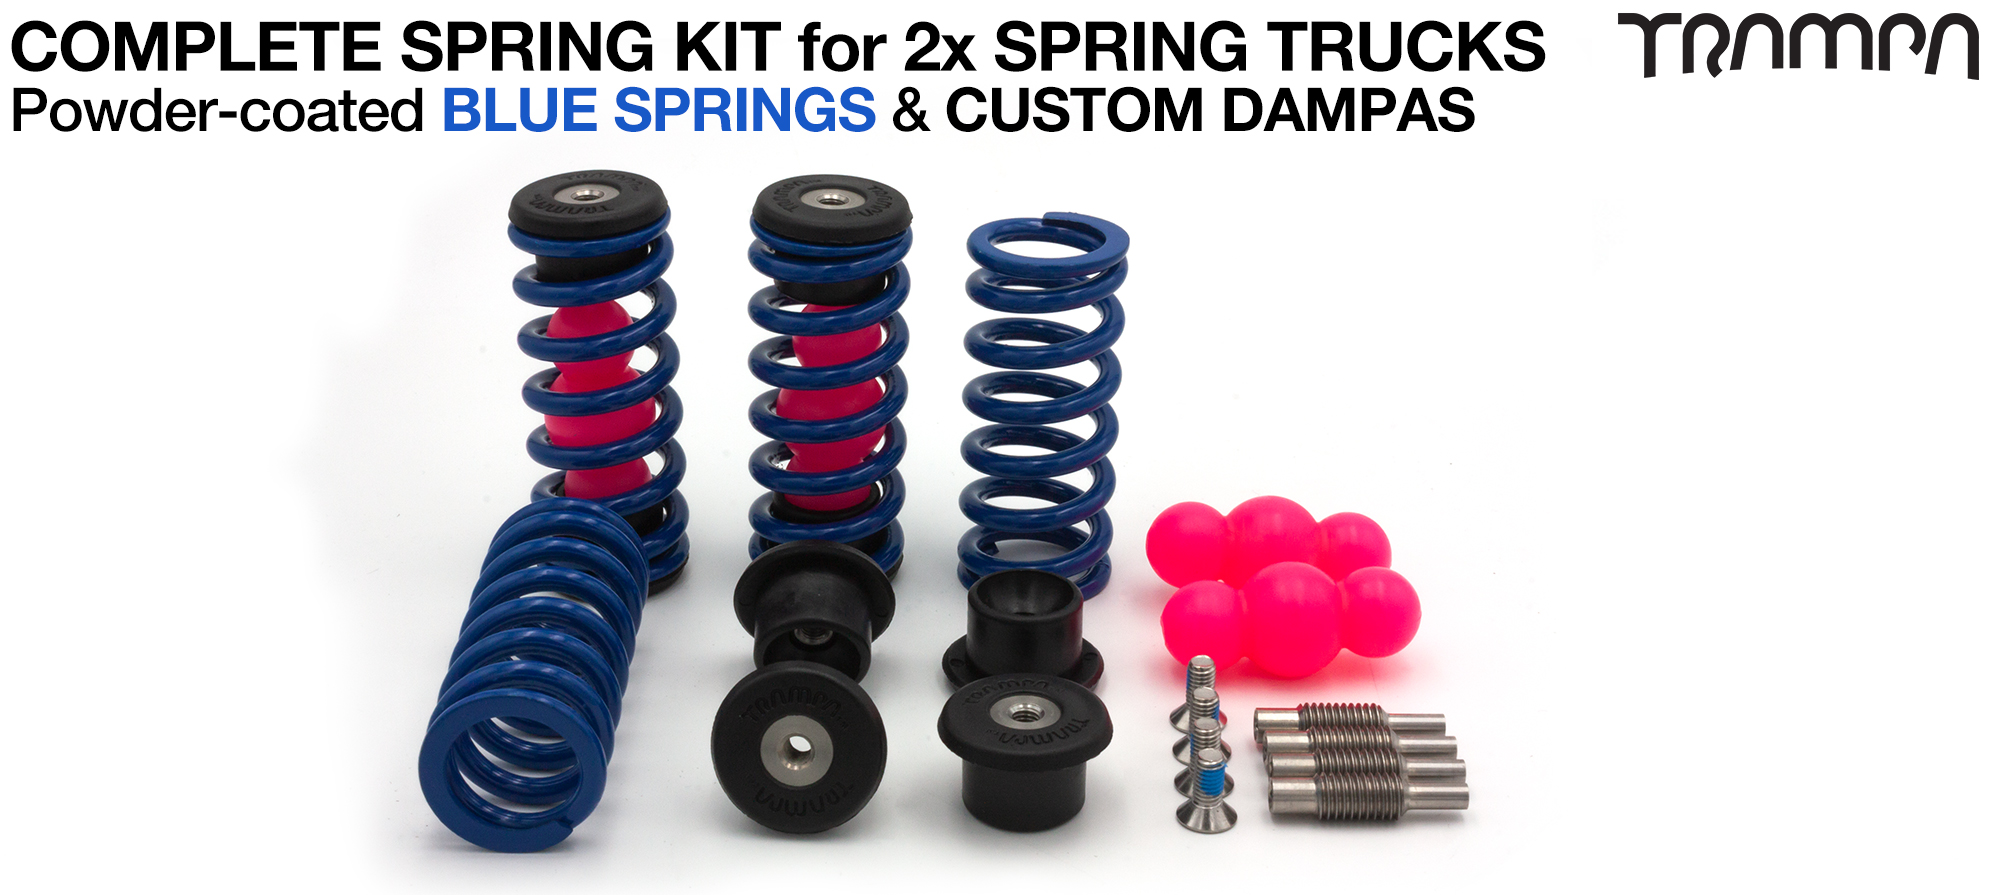 Complete Spring kit for 1x Board = 4x BLUE Springs 4x Dampa 8x Spring Retainers 4x Spring Adjuster & 4 M5x12mm Countersunk Bolt